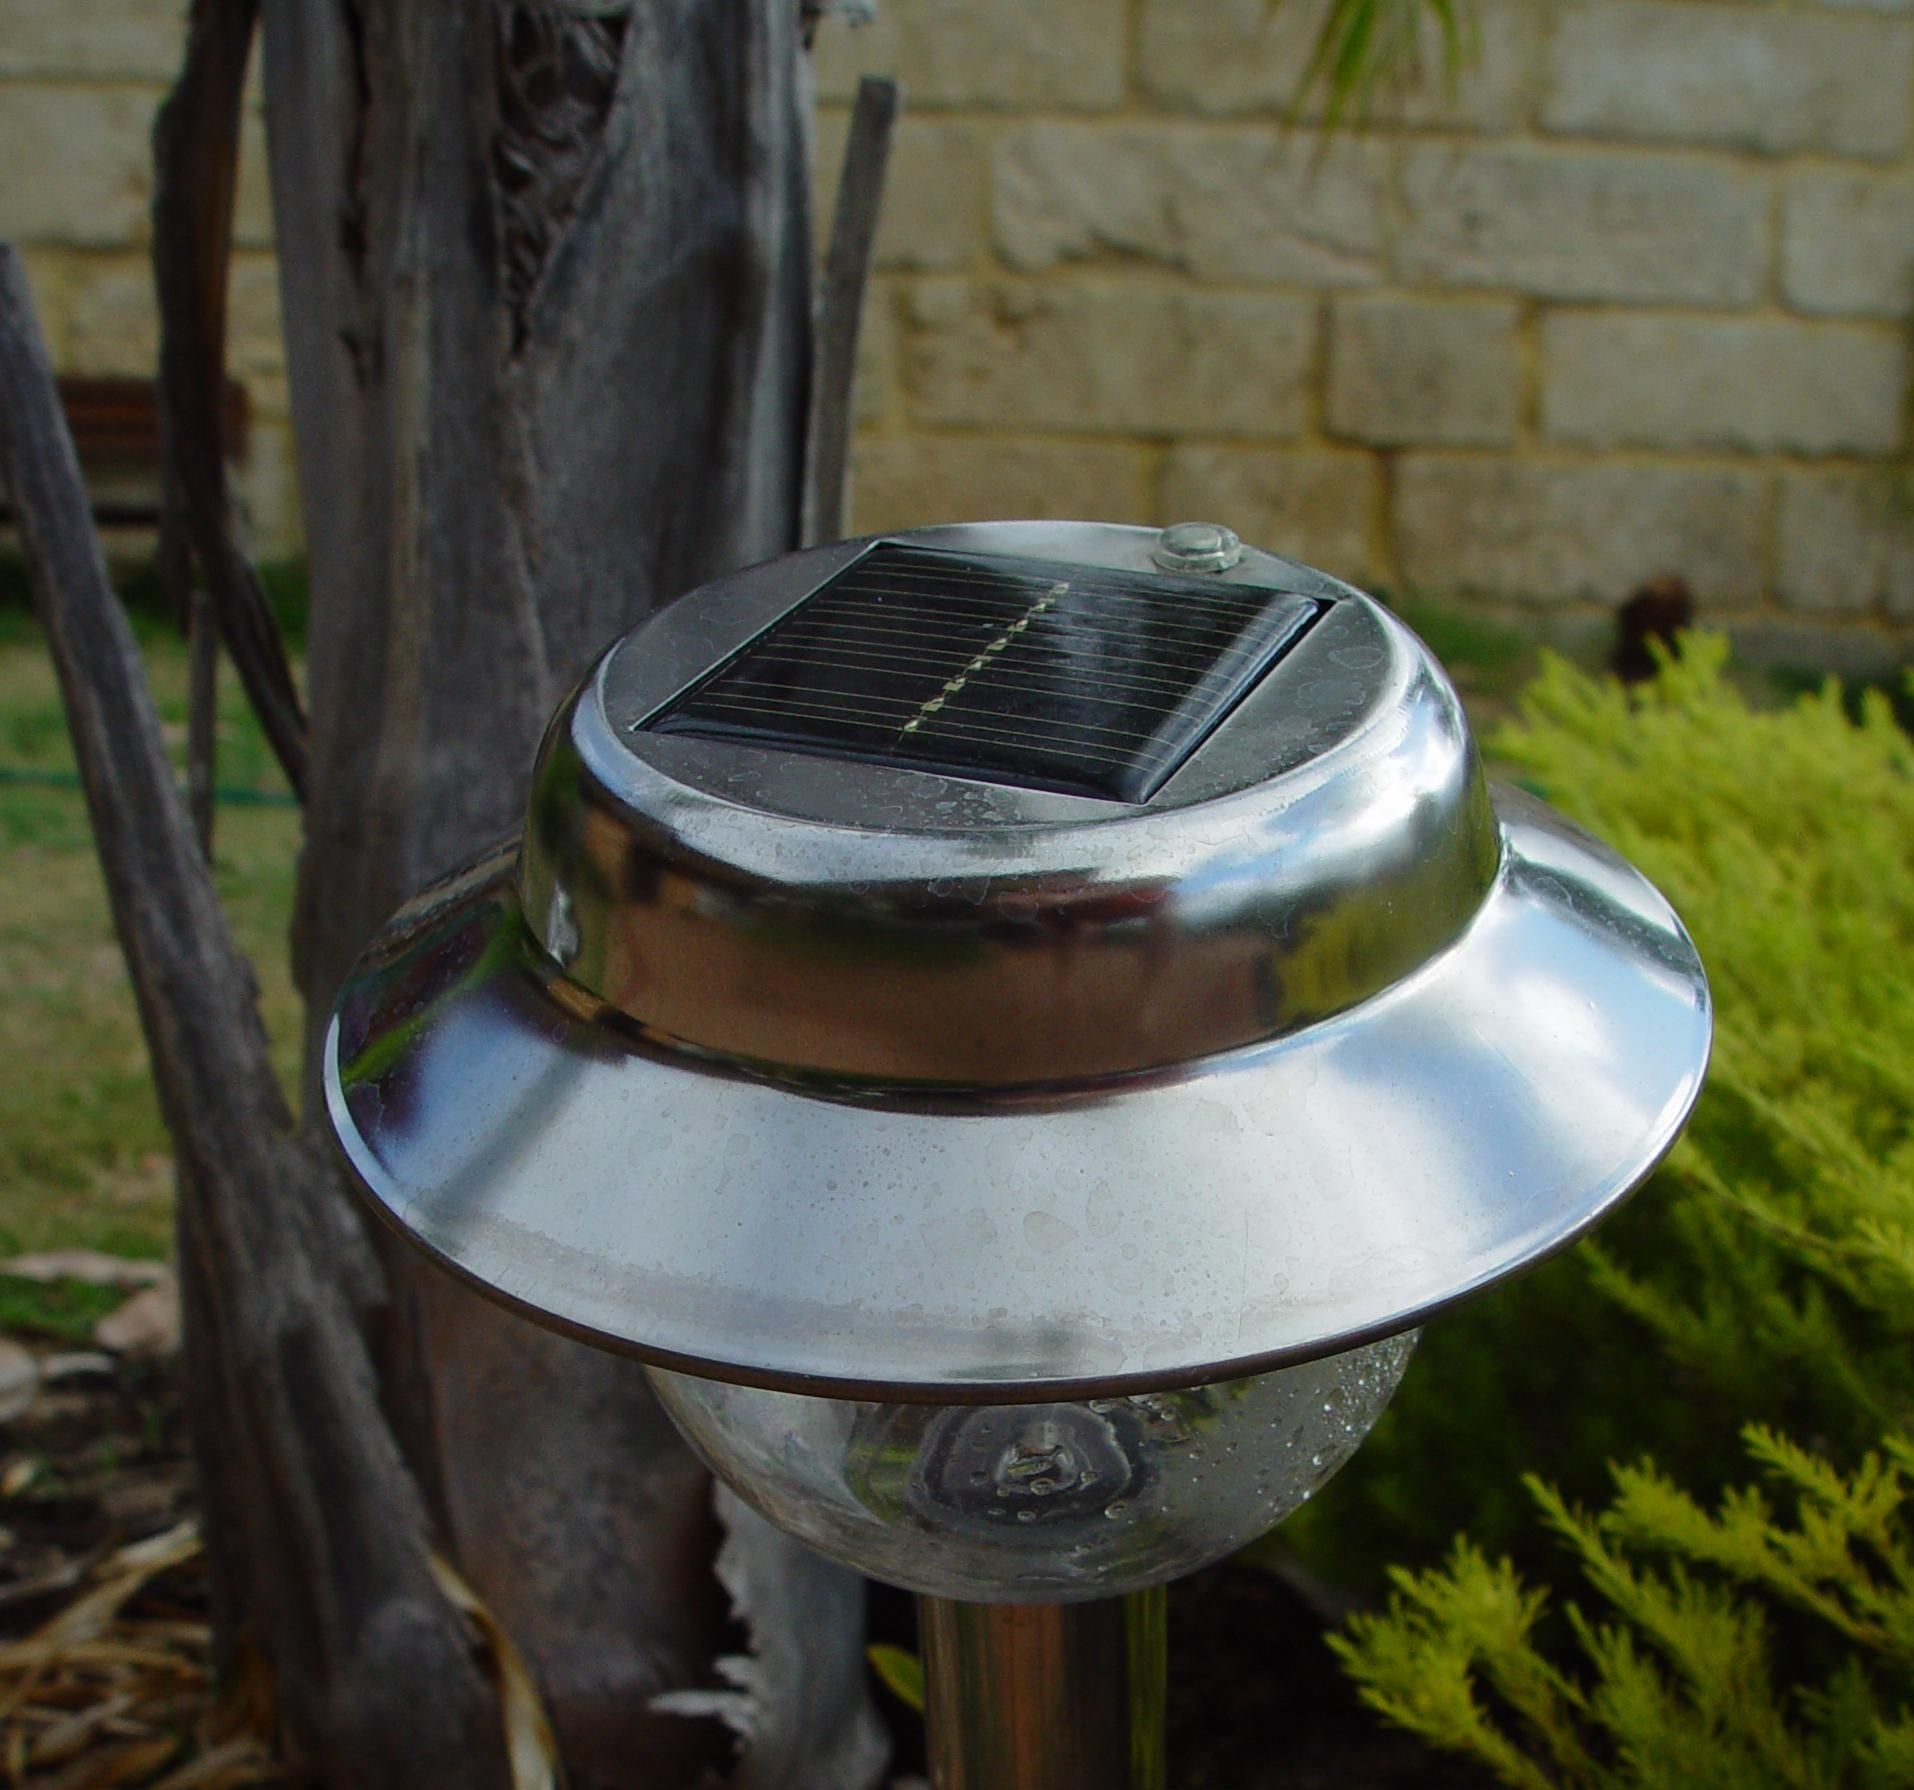 Where to find Solar Christmas Pathway Lights?